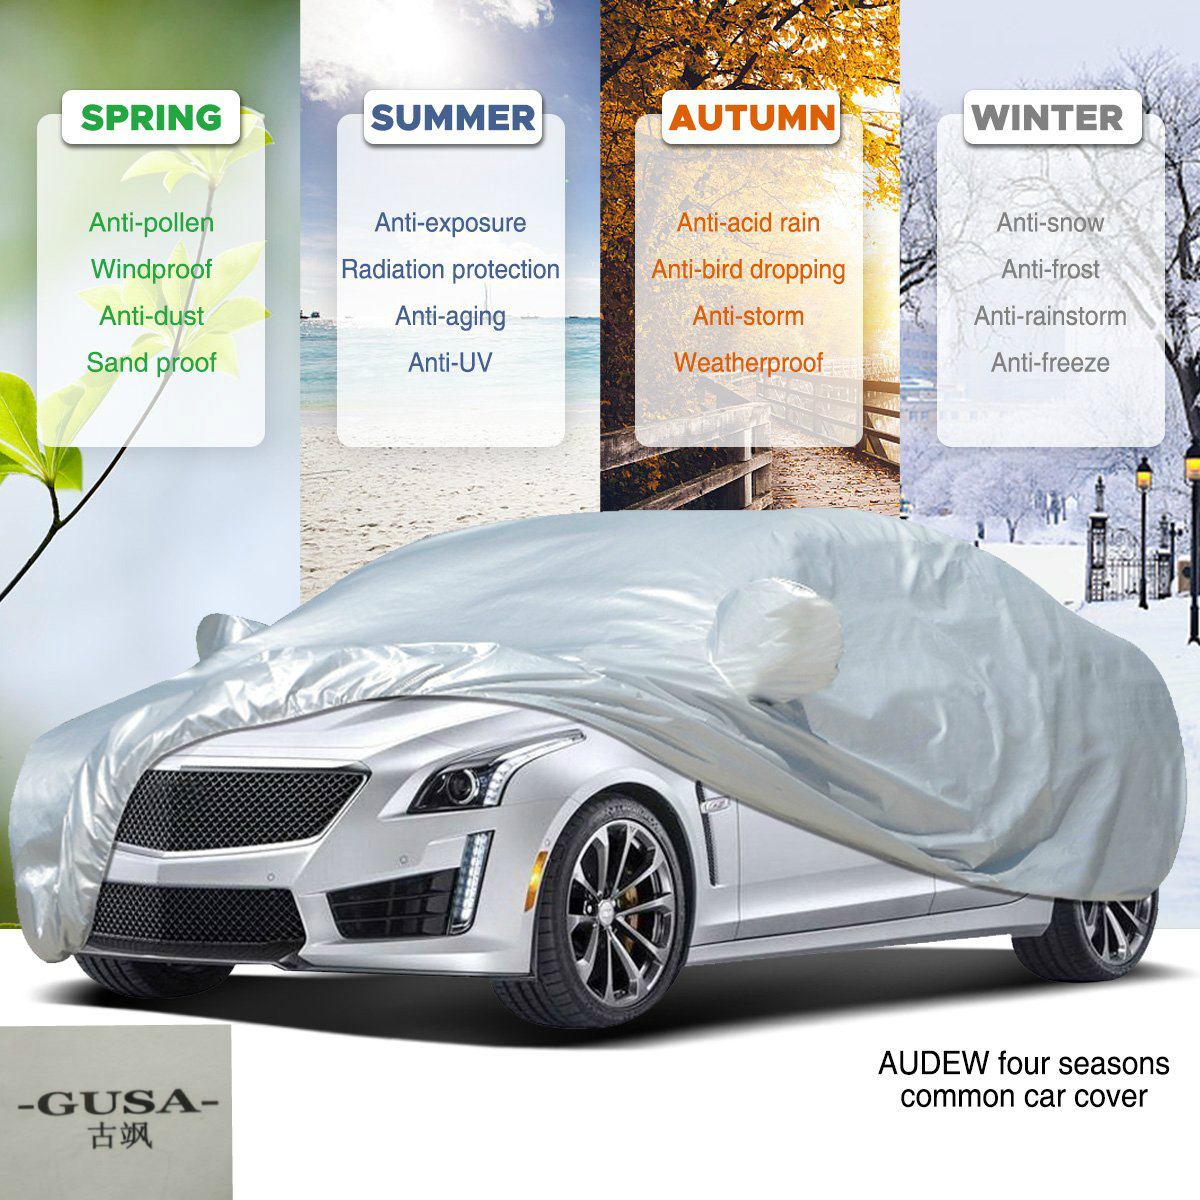 Double Stitched Double Layered PREMIUM Car Cover 4x4 Waterproof UV Protection